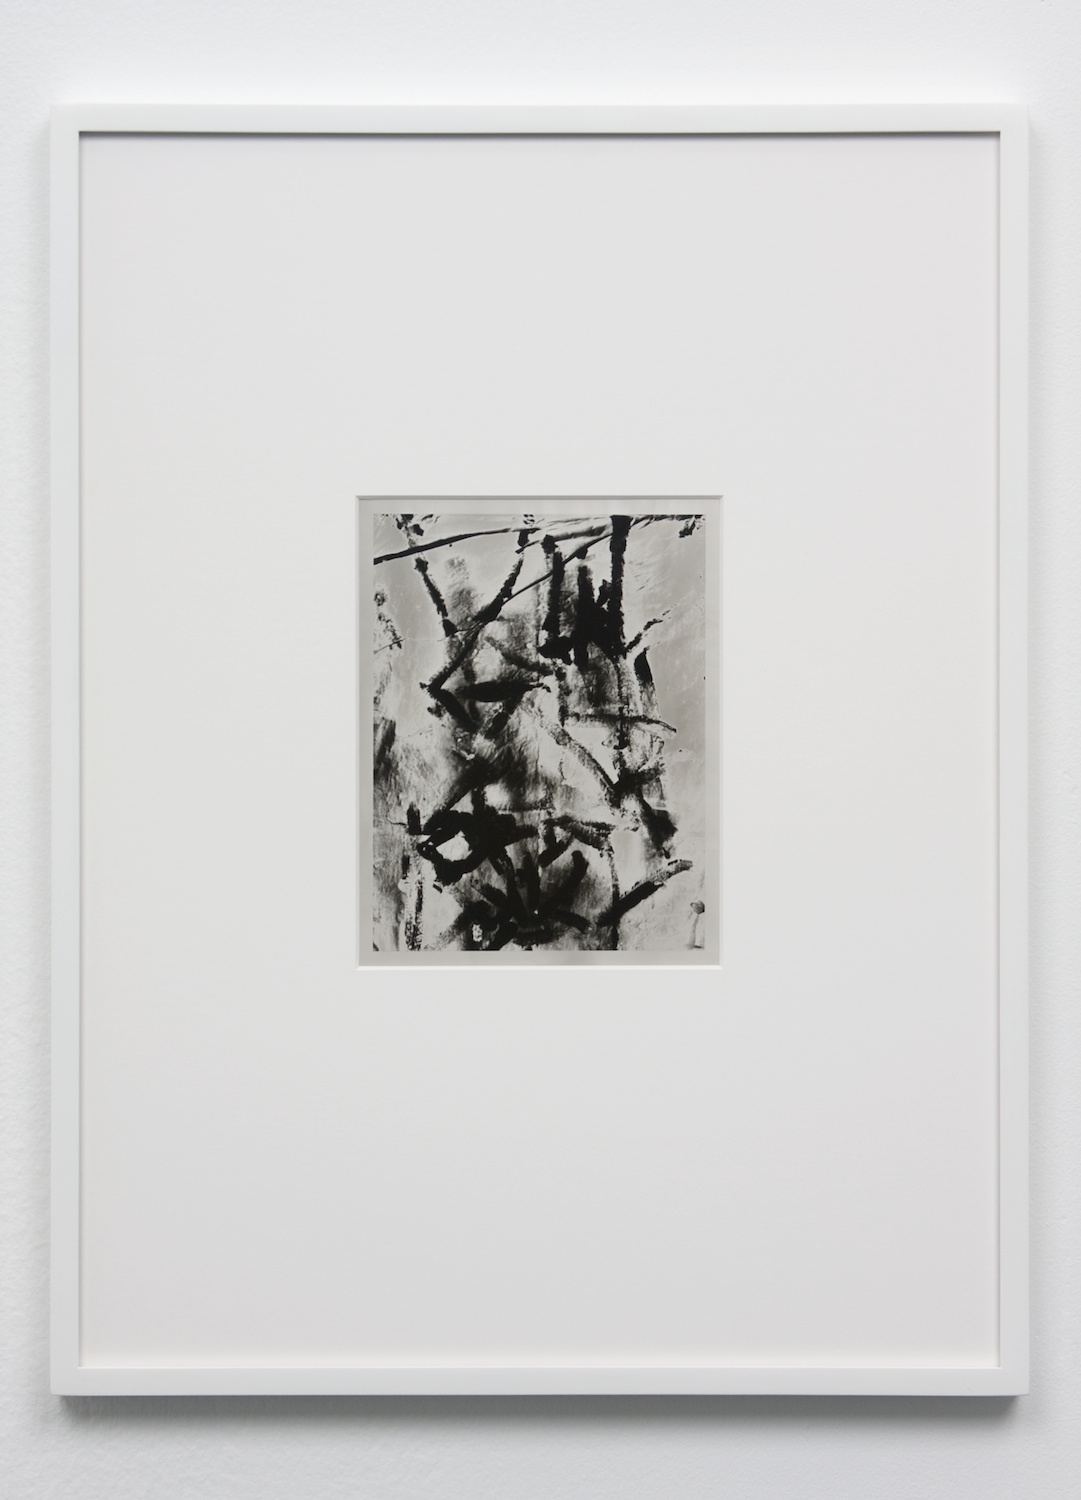 Anthony Pearson  Untitled (Solarization)  2010 Framed solarized silver gelatin photograph 17 ½h x 13 ¼w in AP239